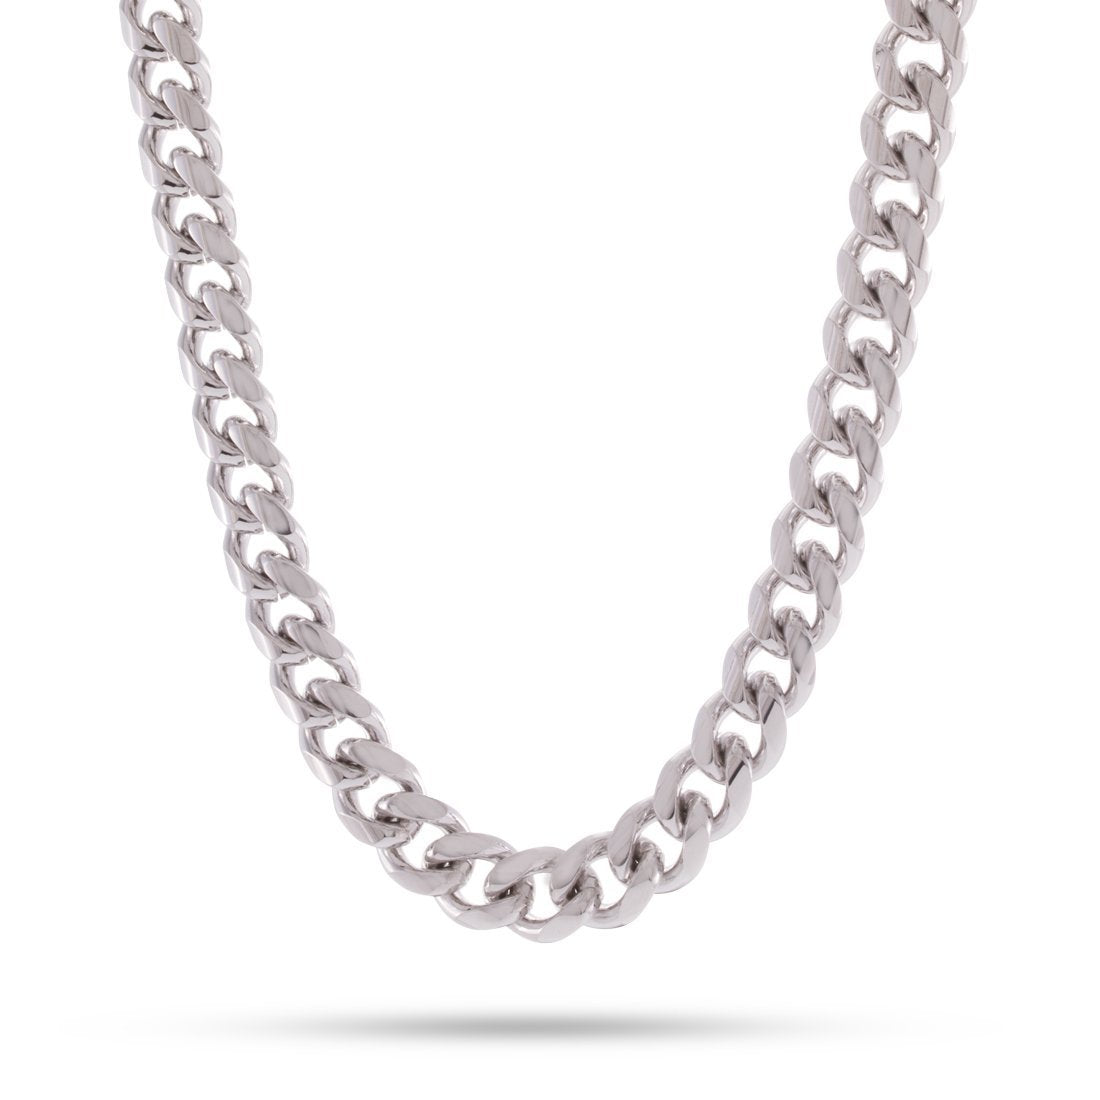 Chains - 10mm, Stainless Steel Miami Cuban Curb Chain -   jetcube